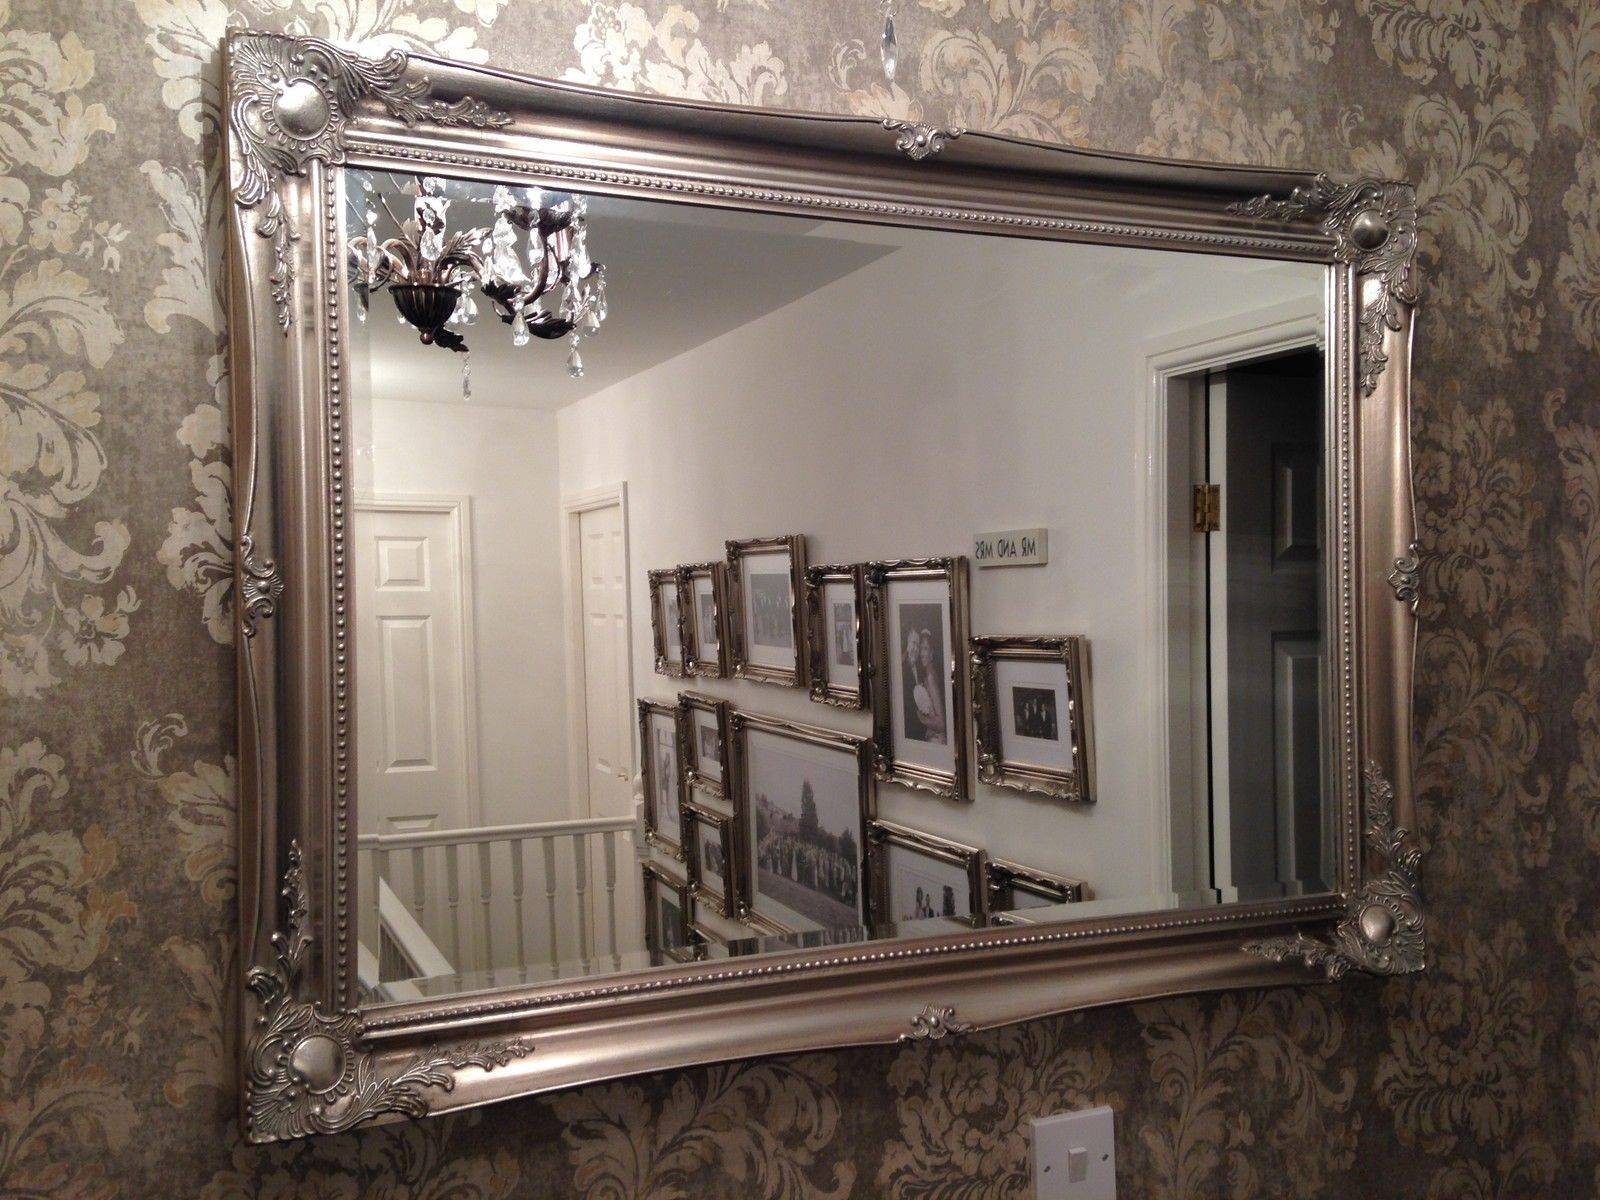 Large Antique Wall Mirror Ornate Frame Antique Ornate Wall Mirrors intended for Vintage Silver Mirrors (Image 13 of 25)